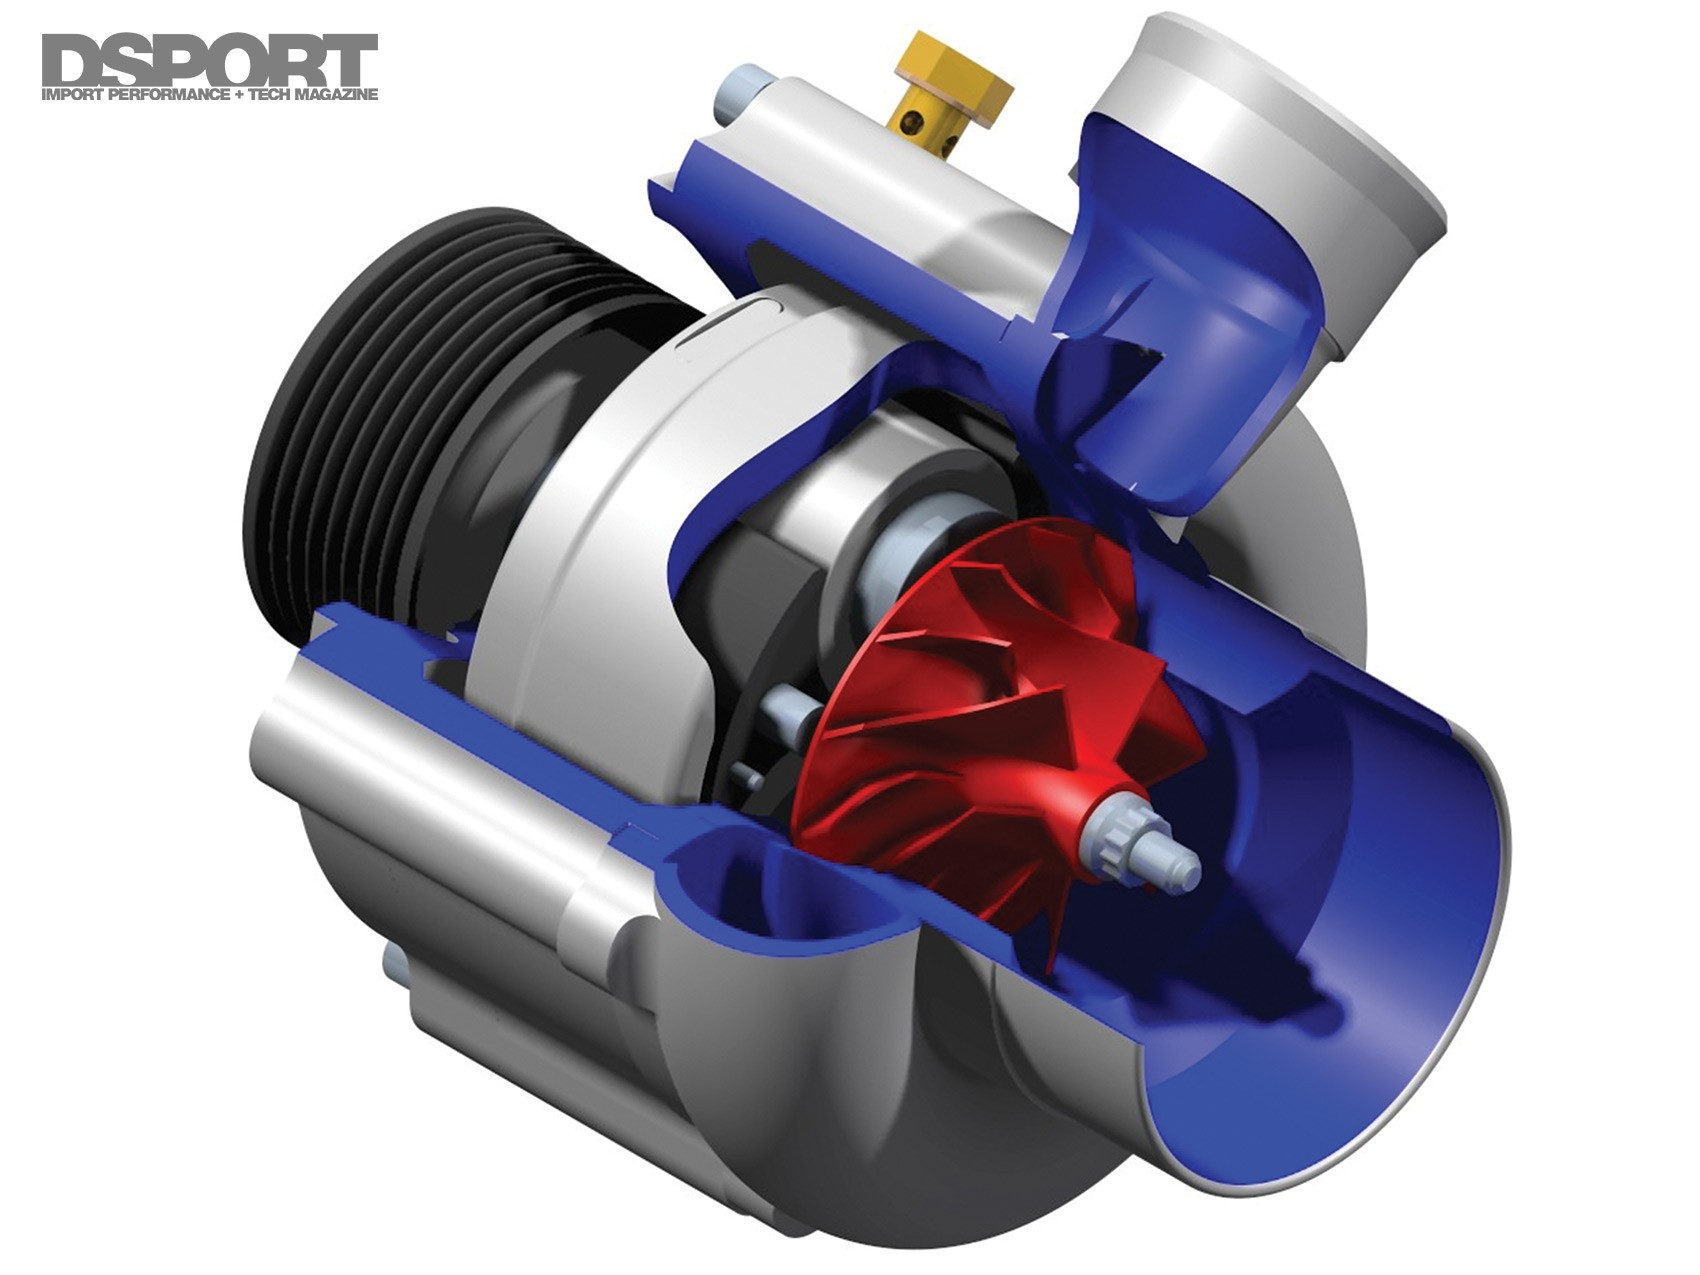 Centrifugal Supercharger Diagram Boost 101 why Boost is Best